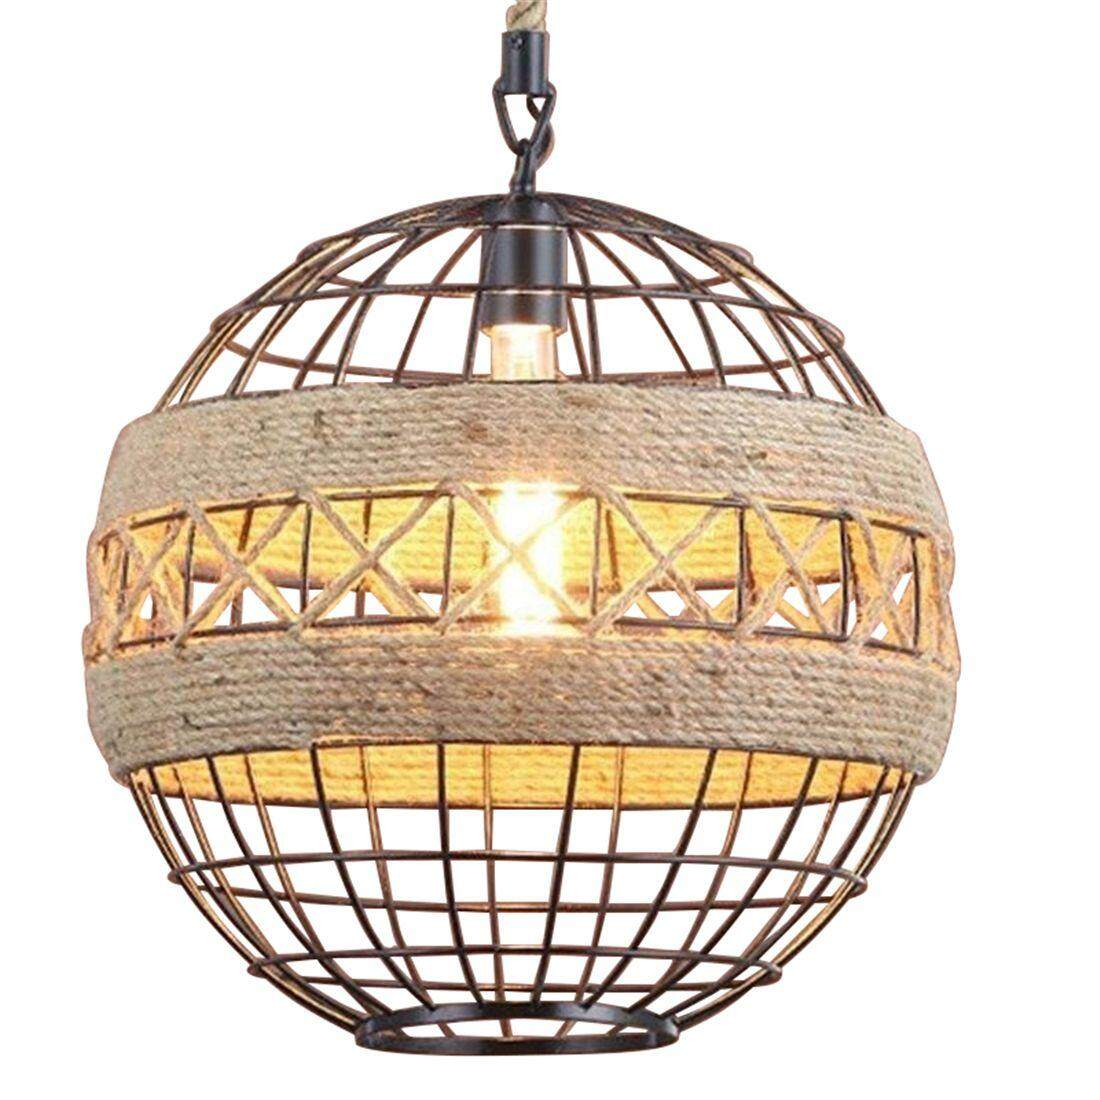 Home Ceiling Lights Buy At Best Price In Room Cage Light Vintage Retro On Wiring Led Country Rope Industrial Wind Chandelier Internet Cafe Restaurant Bar Ball Personalized Lamps